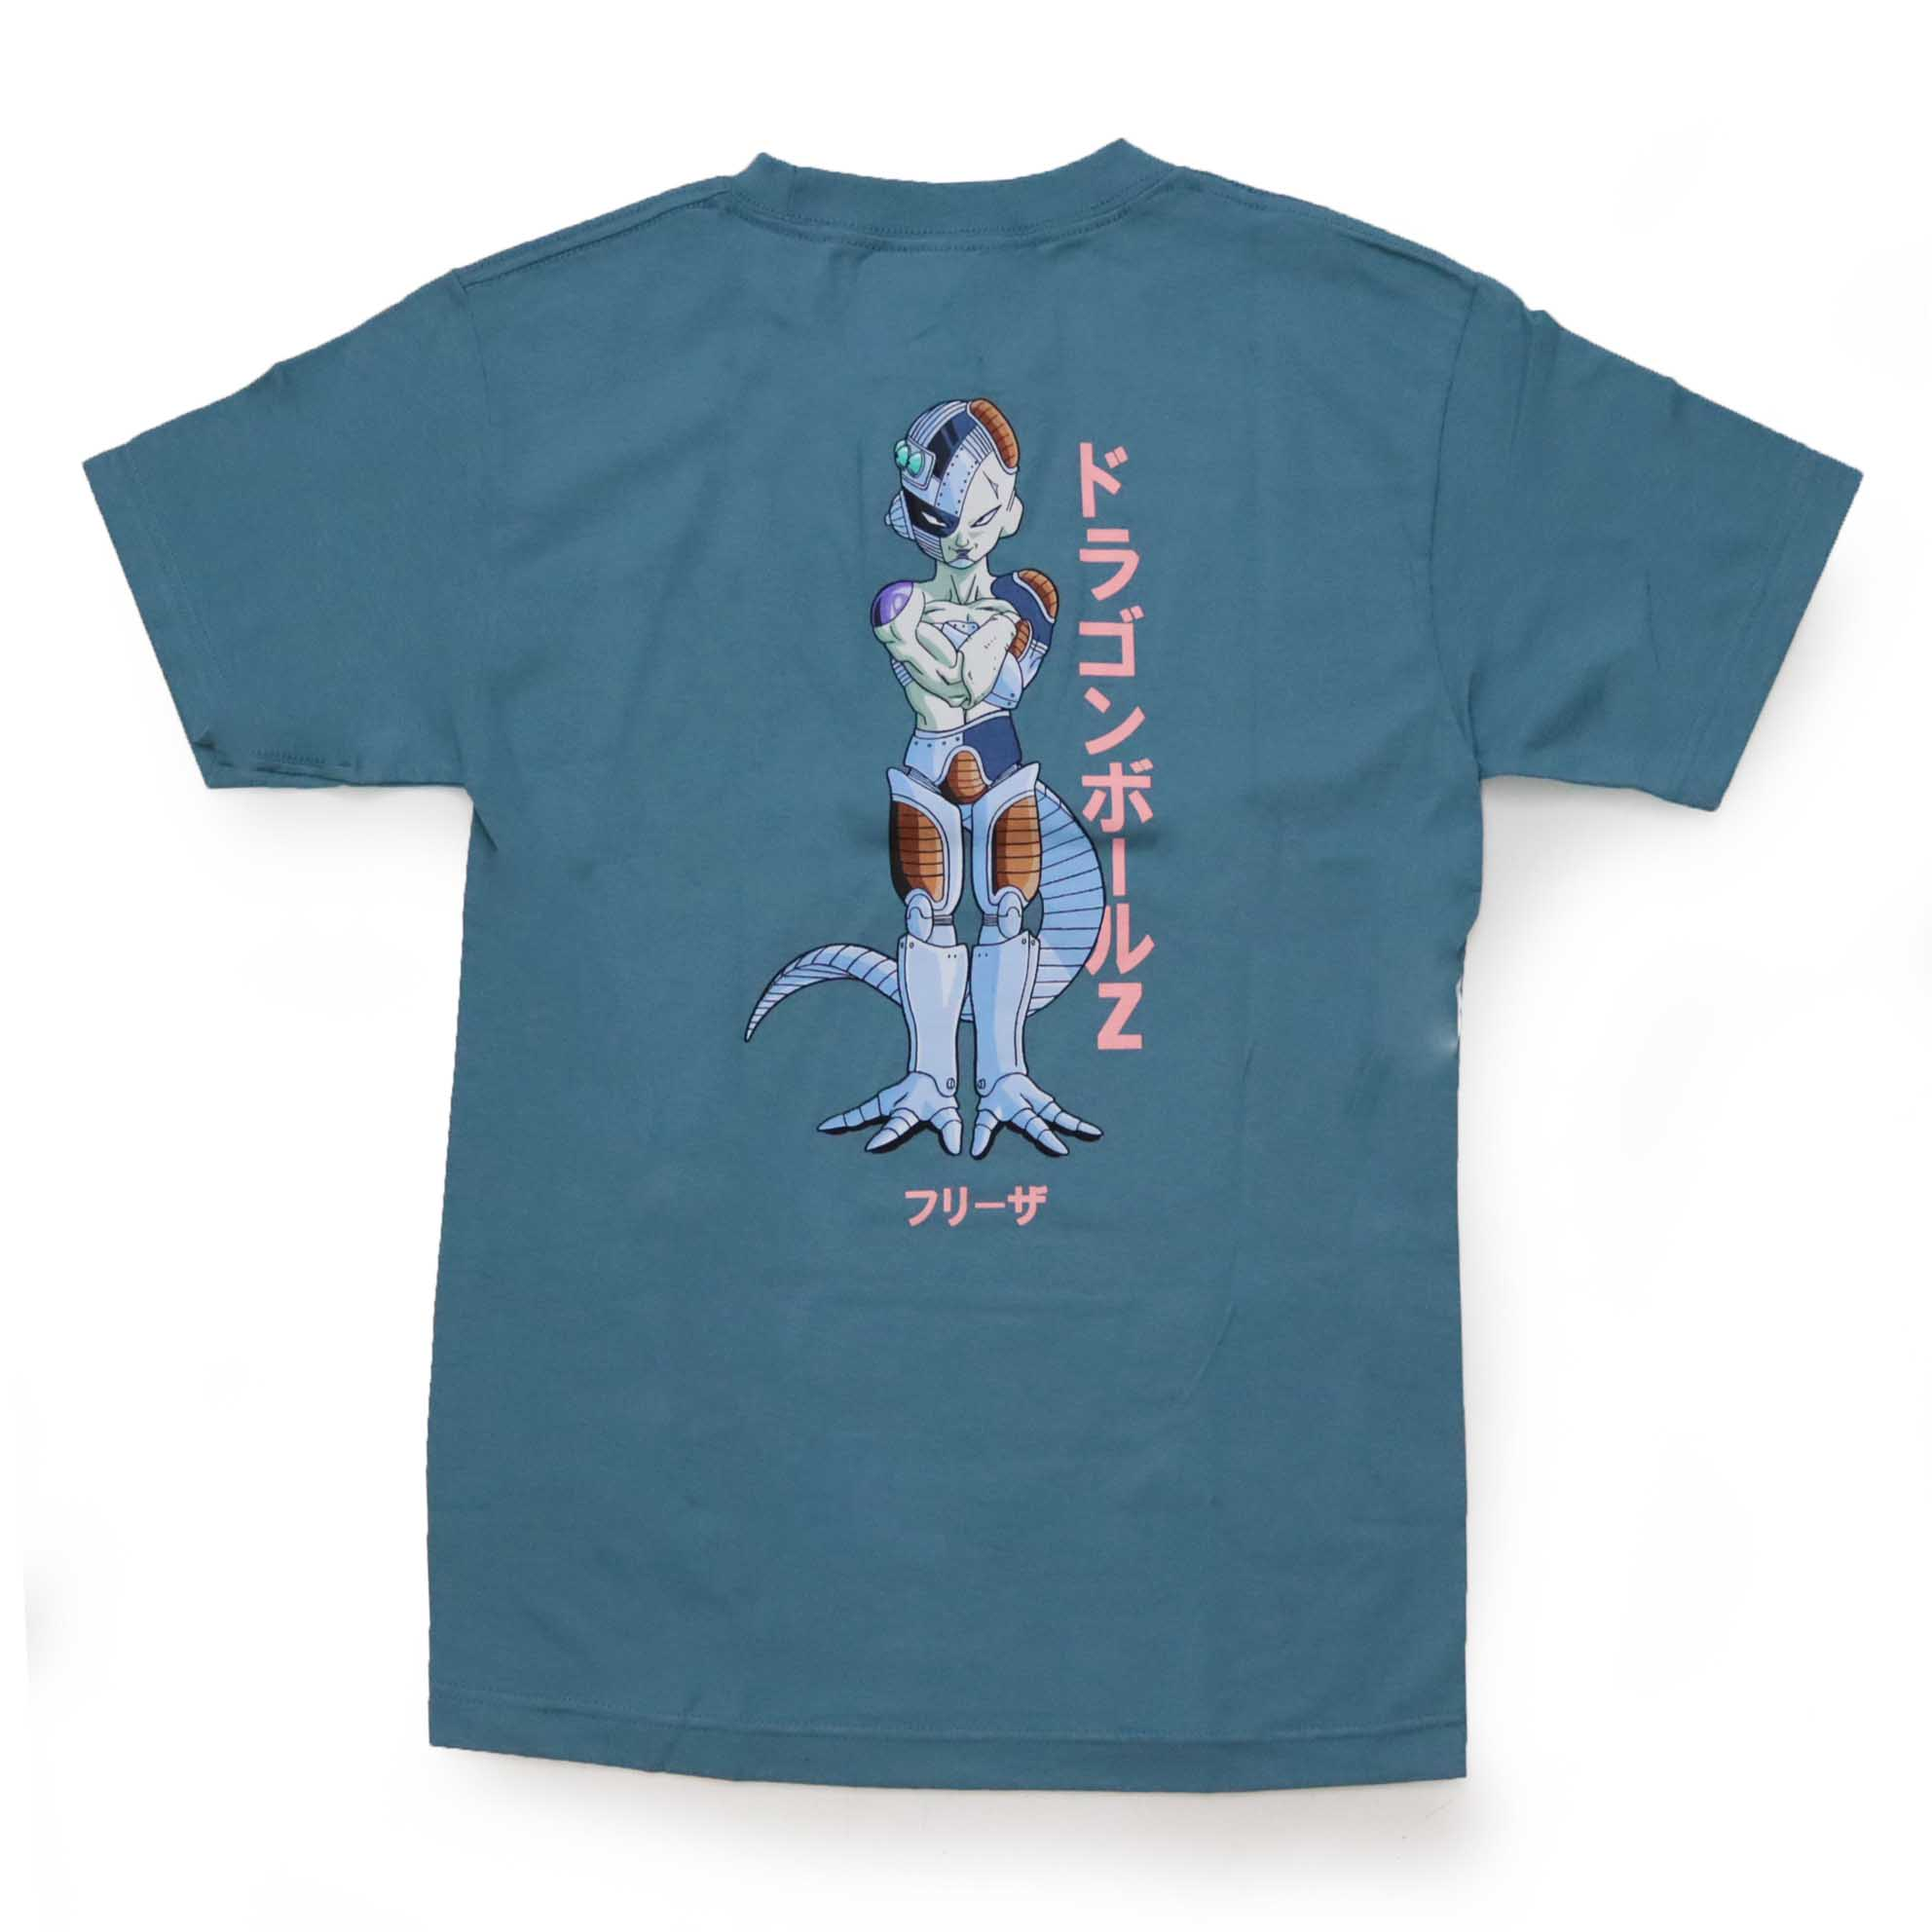 Camiseta Primitive x Dragon Ball Freeza Mecha - Azul (Importado)